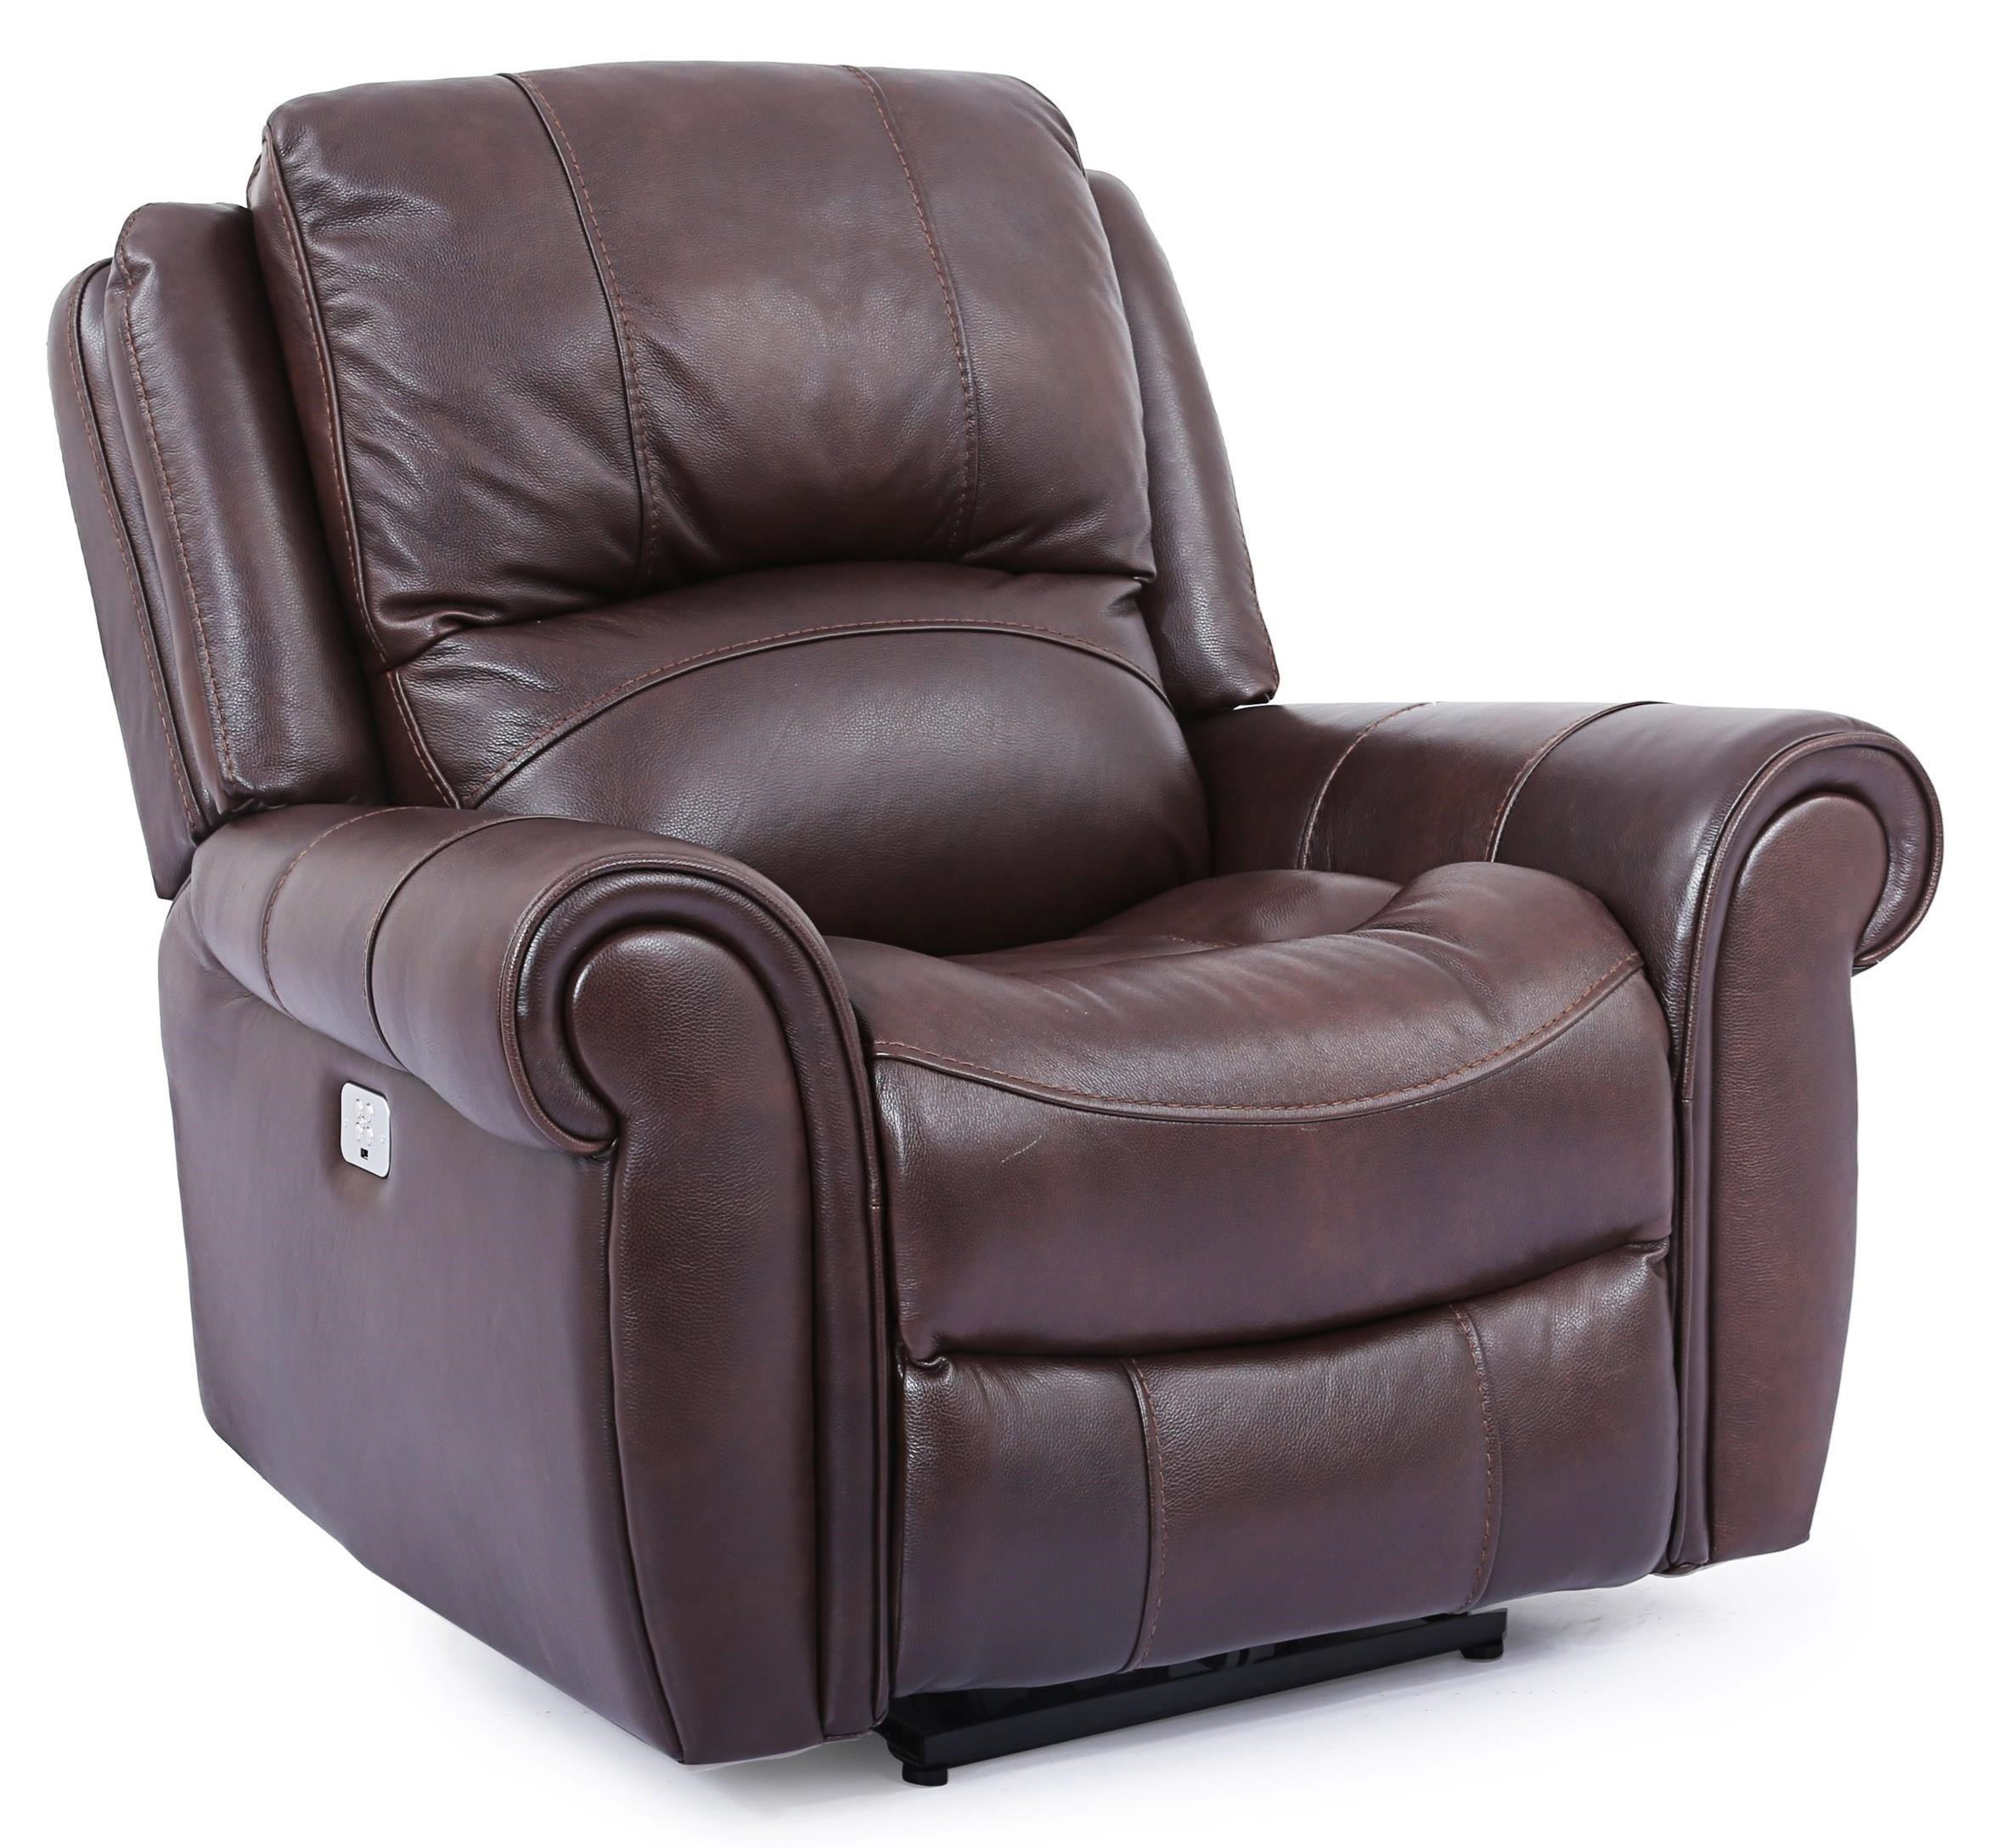 Cheers Sofa 5175M Power Recliner - Item Number: UXW5175-L1-1E-PHR-2545